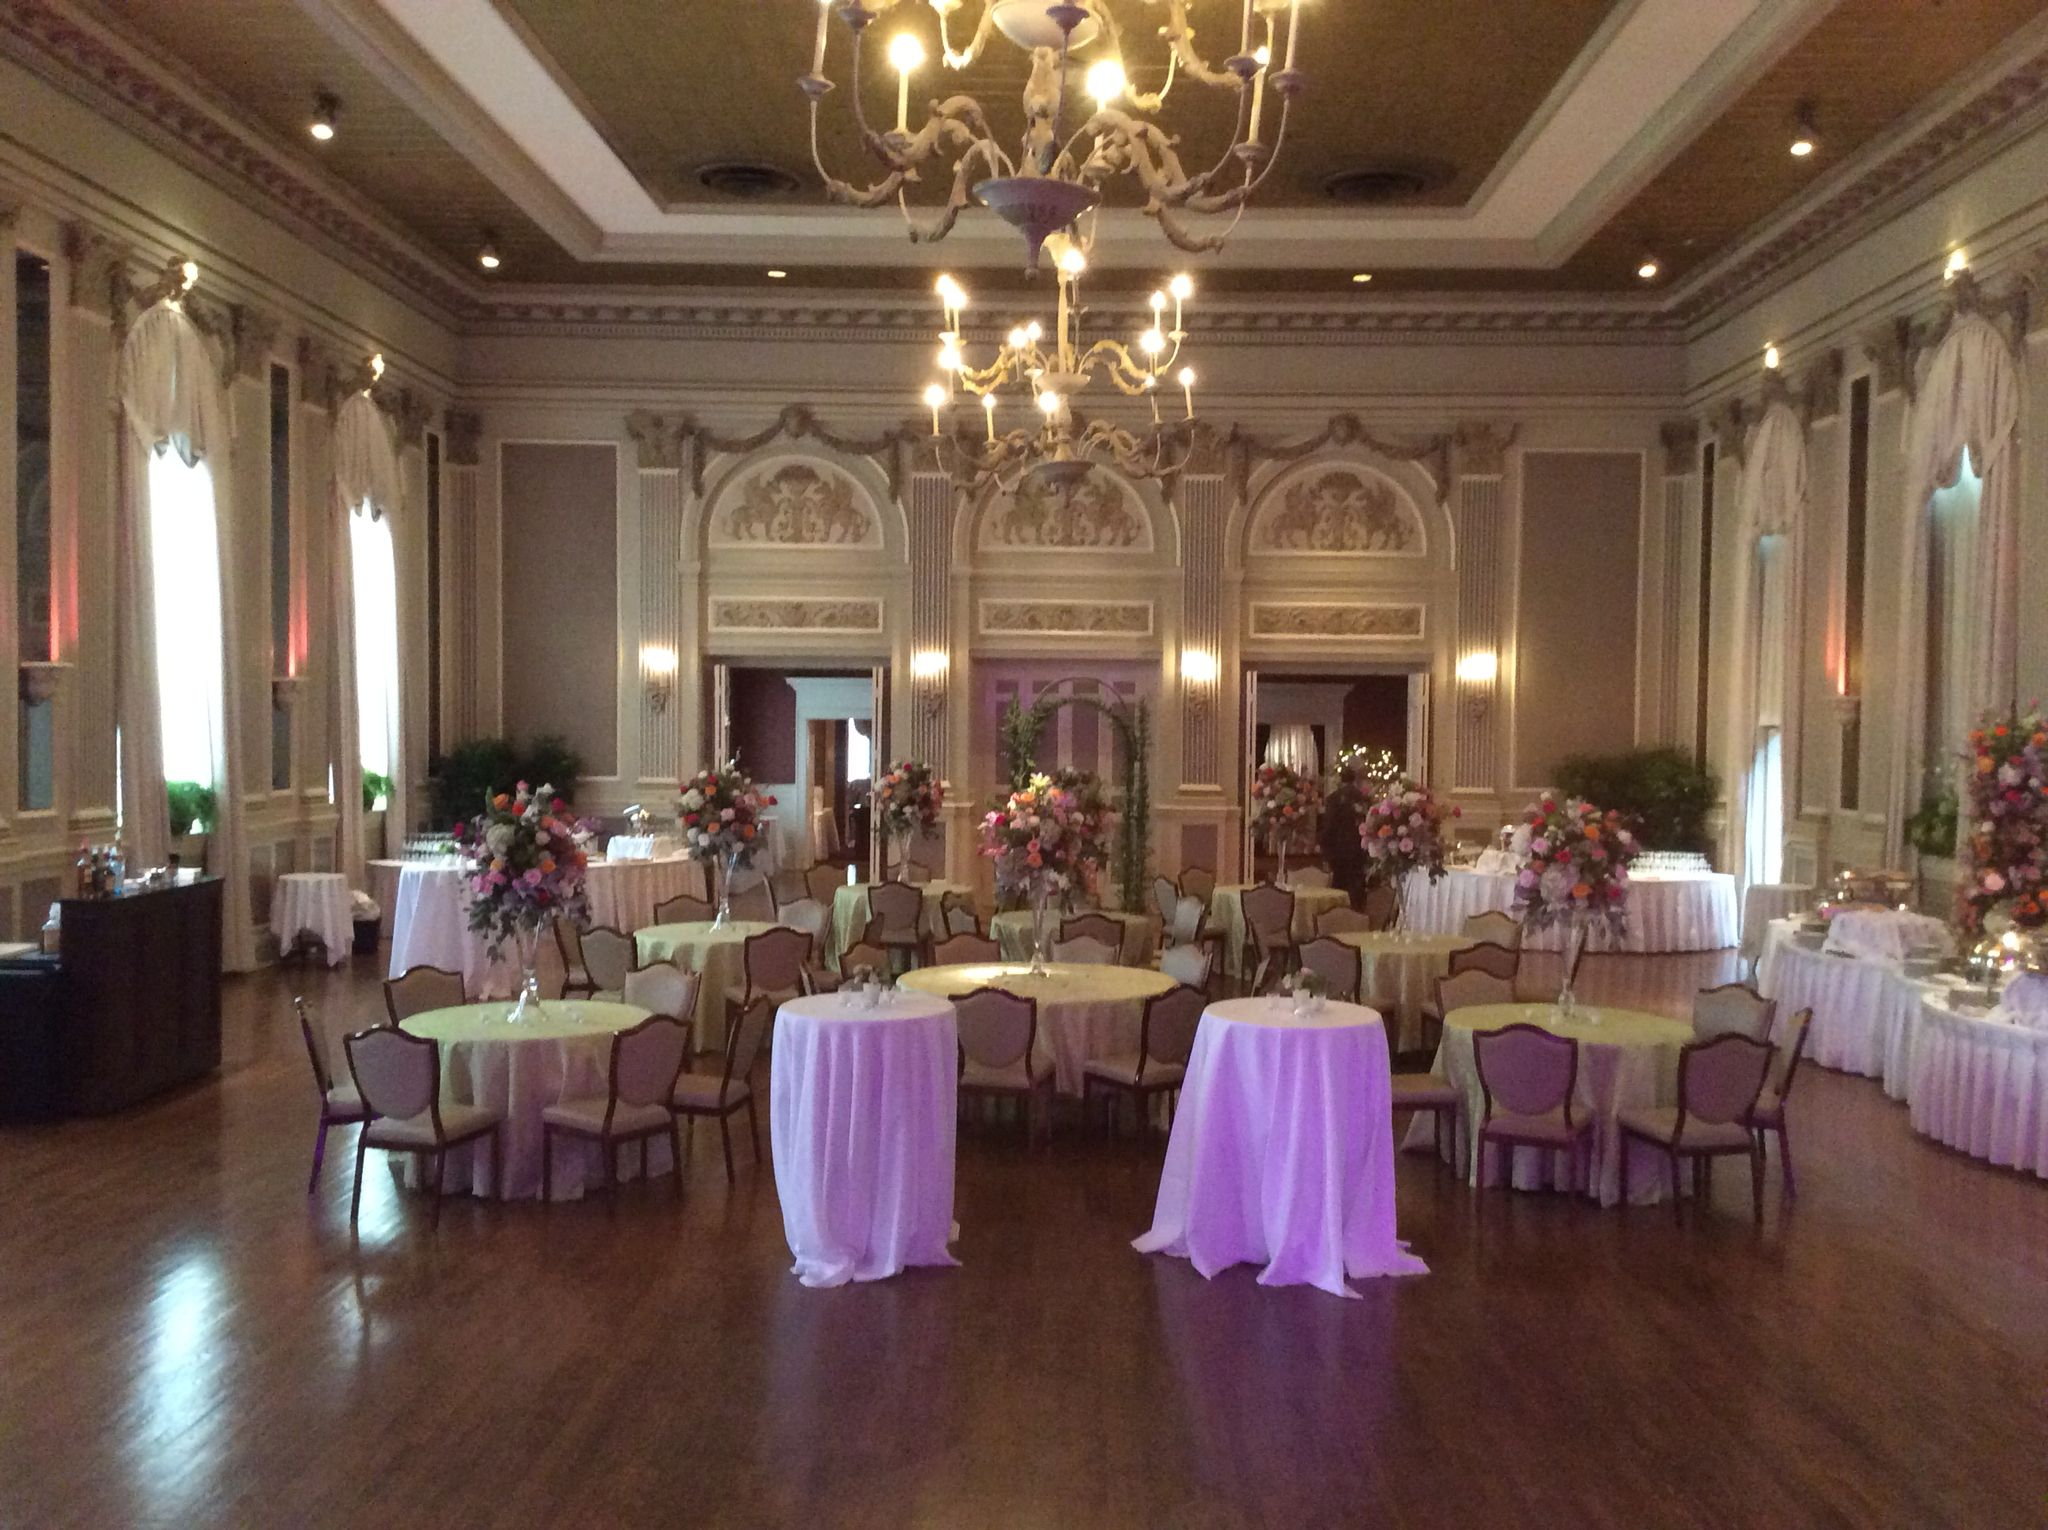 Cocktail Style Reception With Tall Arrangements On Seated